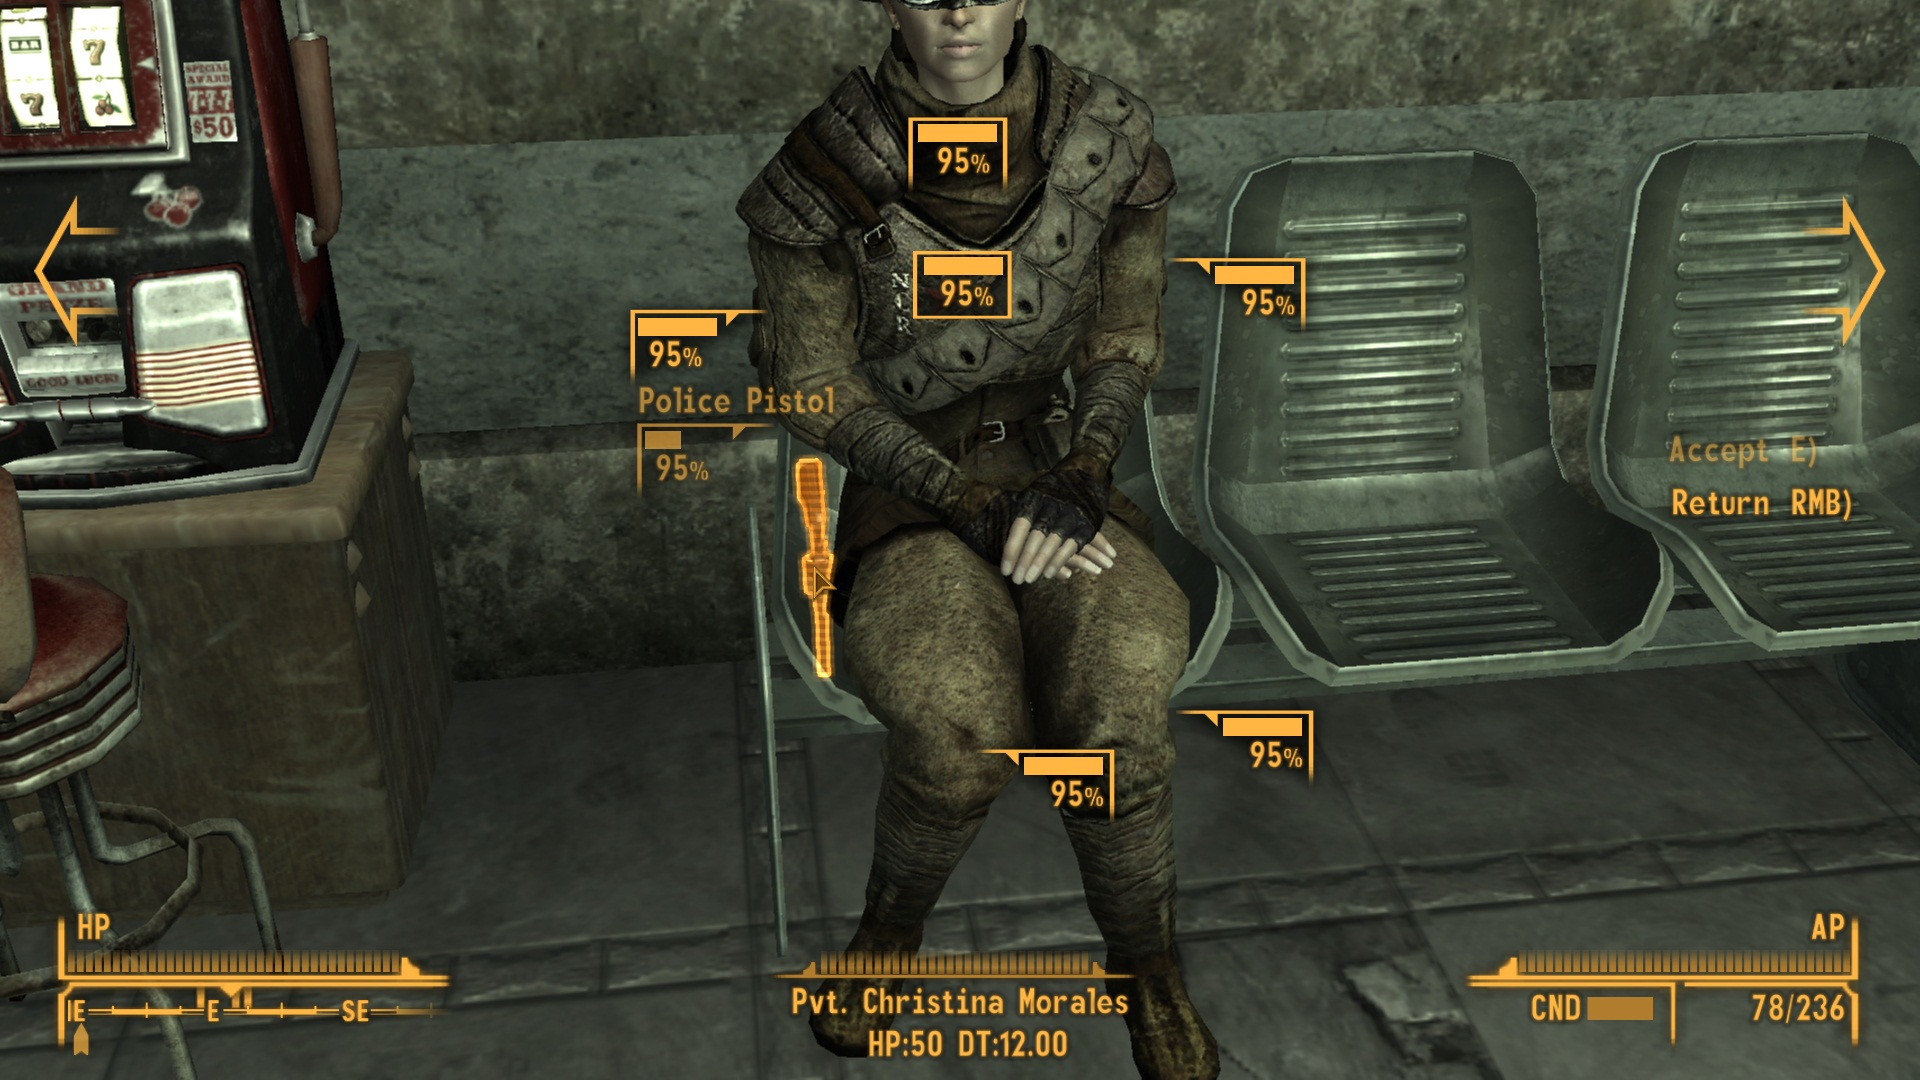 DLC Weapons and Armors in the Mojave at Fallout New Vegas